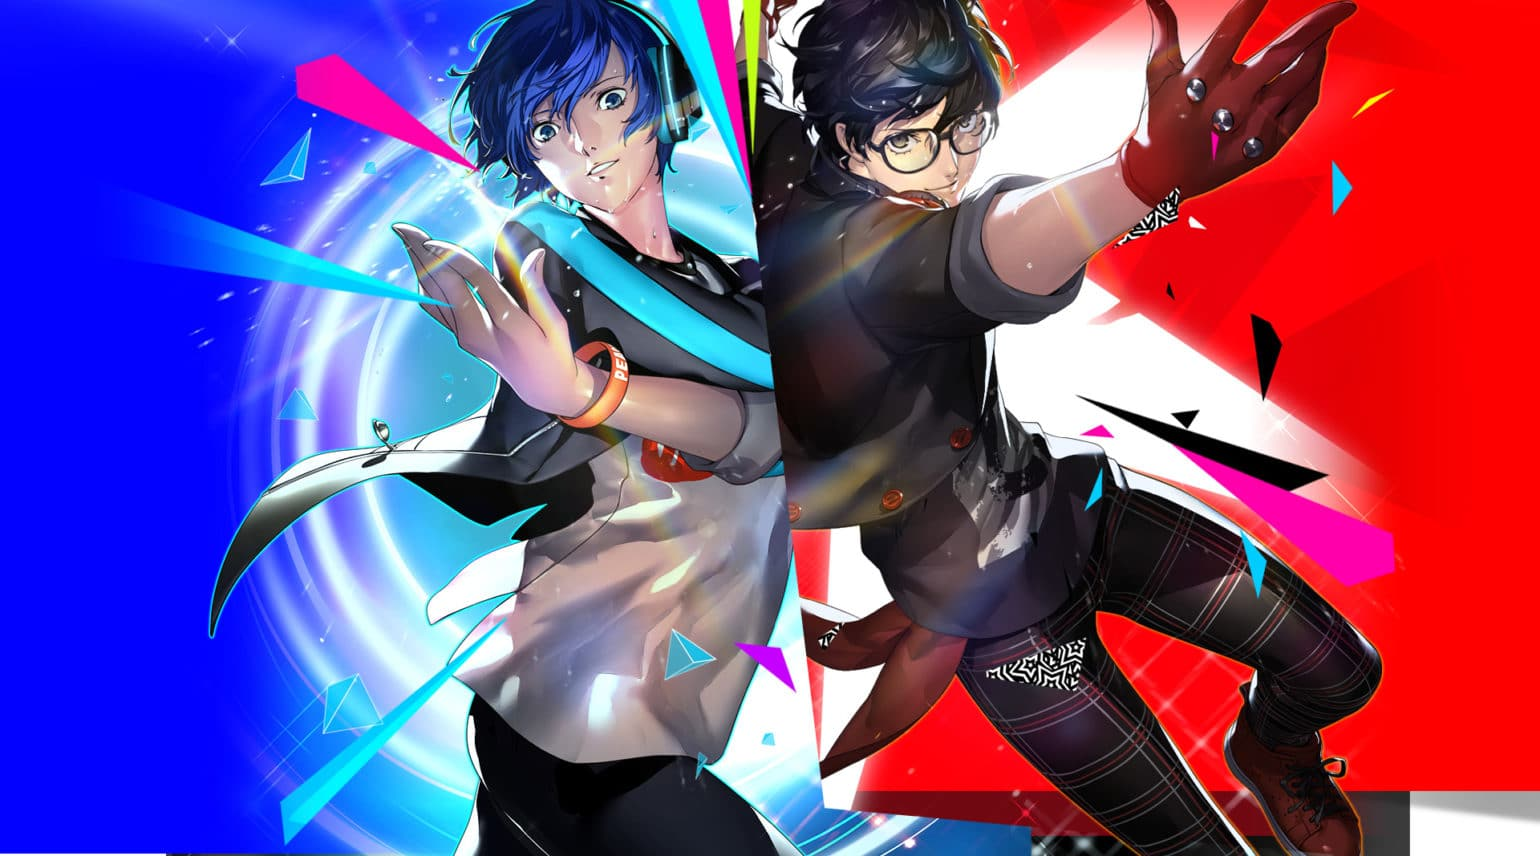 Persona Dancing - illustration choc P3 et P5